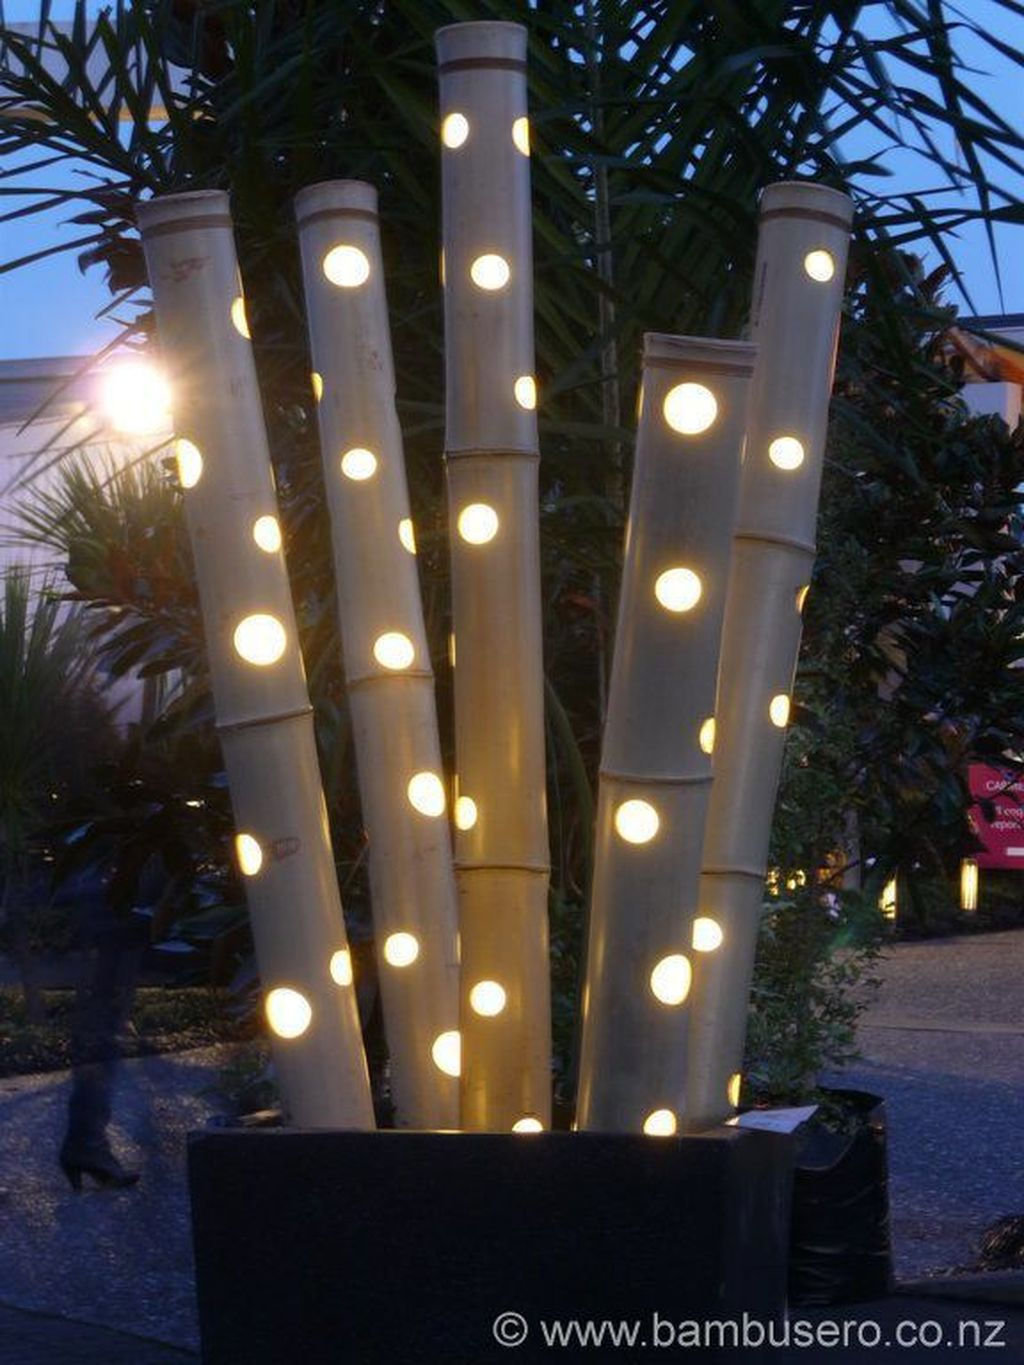 Inspiring Garden Lamps Ideas For Outdoors Decor 23